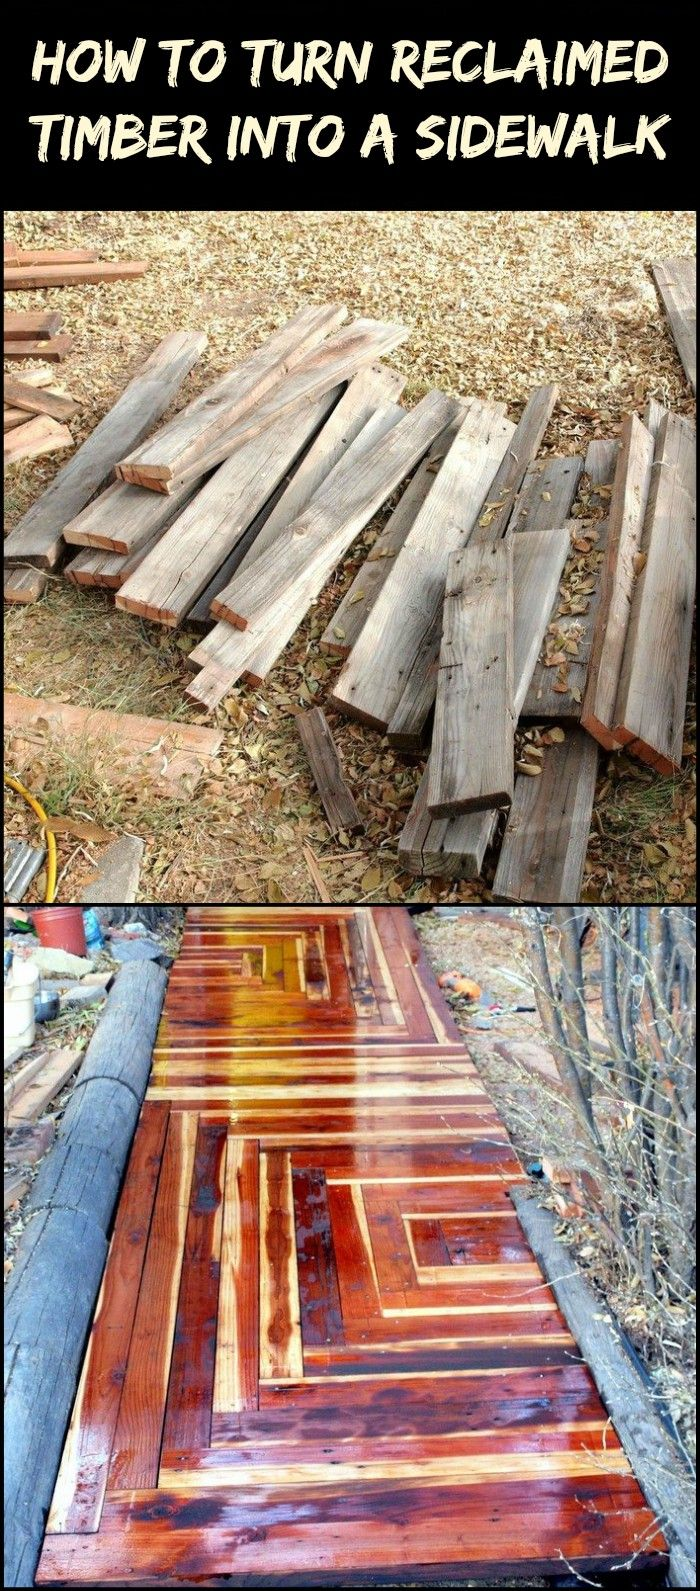 Tutorial: How to Build an Awesome Sidewalk With Recycled Lumber For Only $50.00